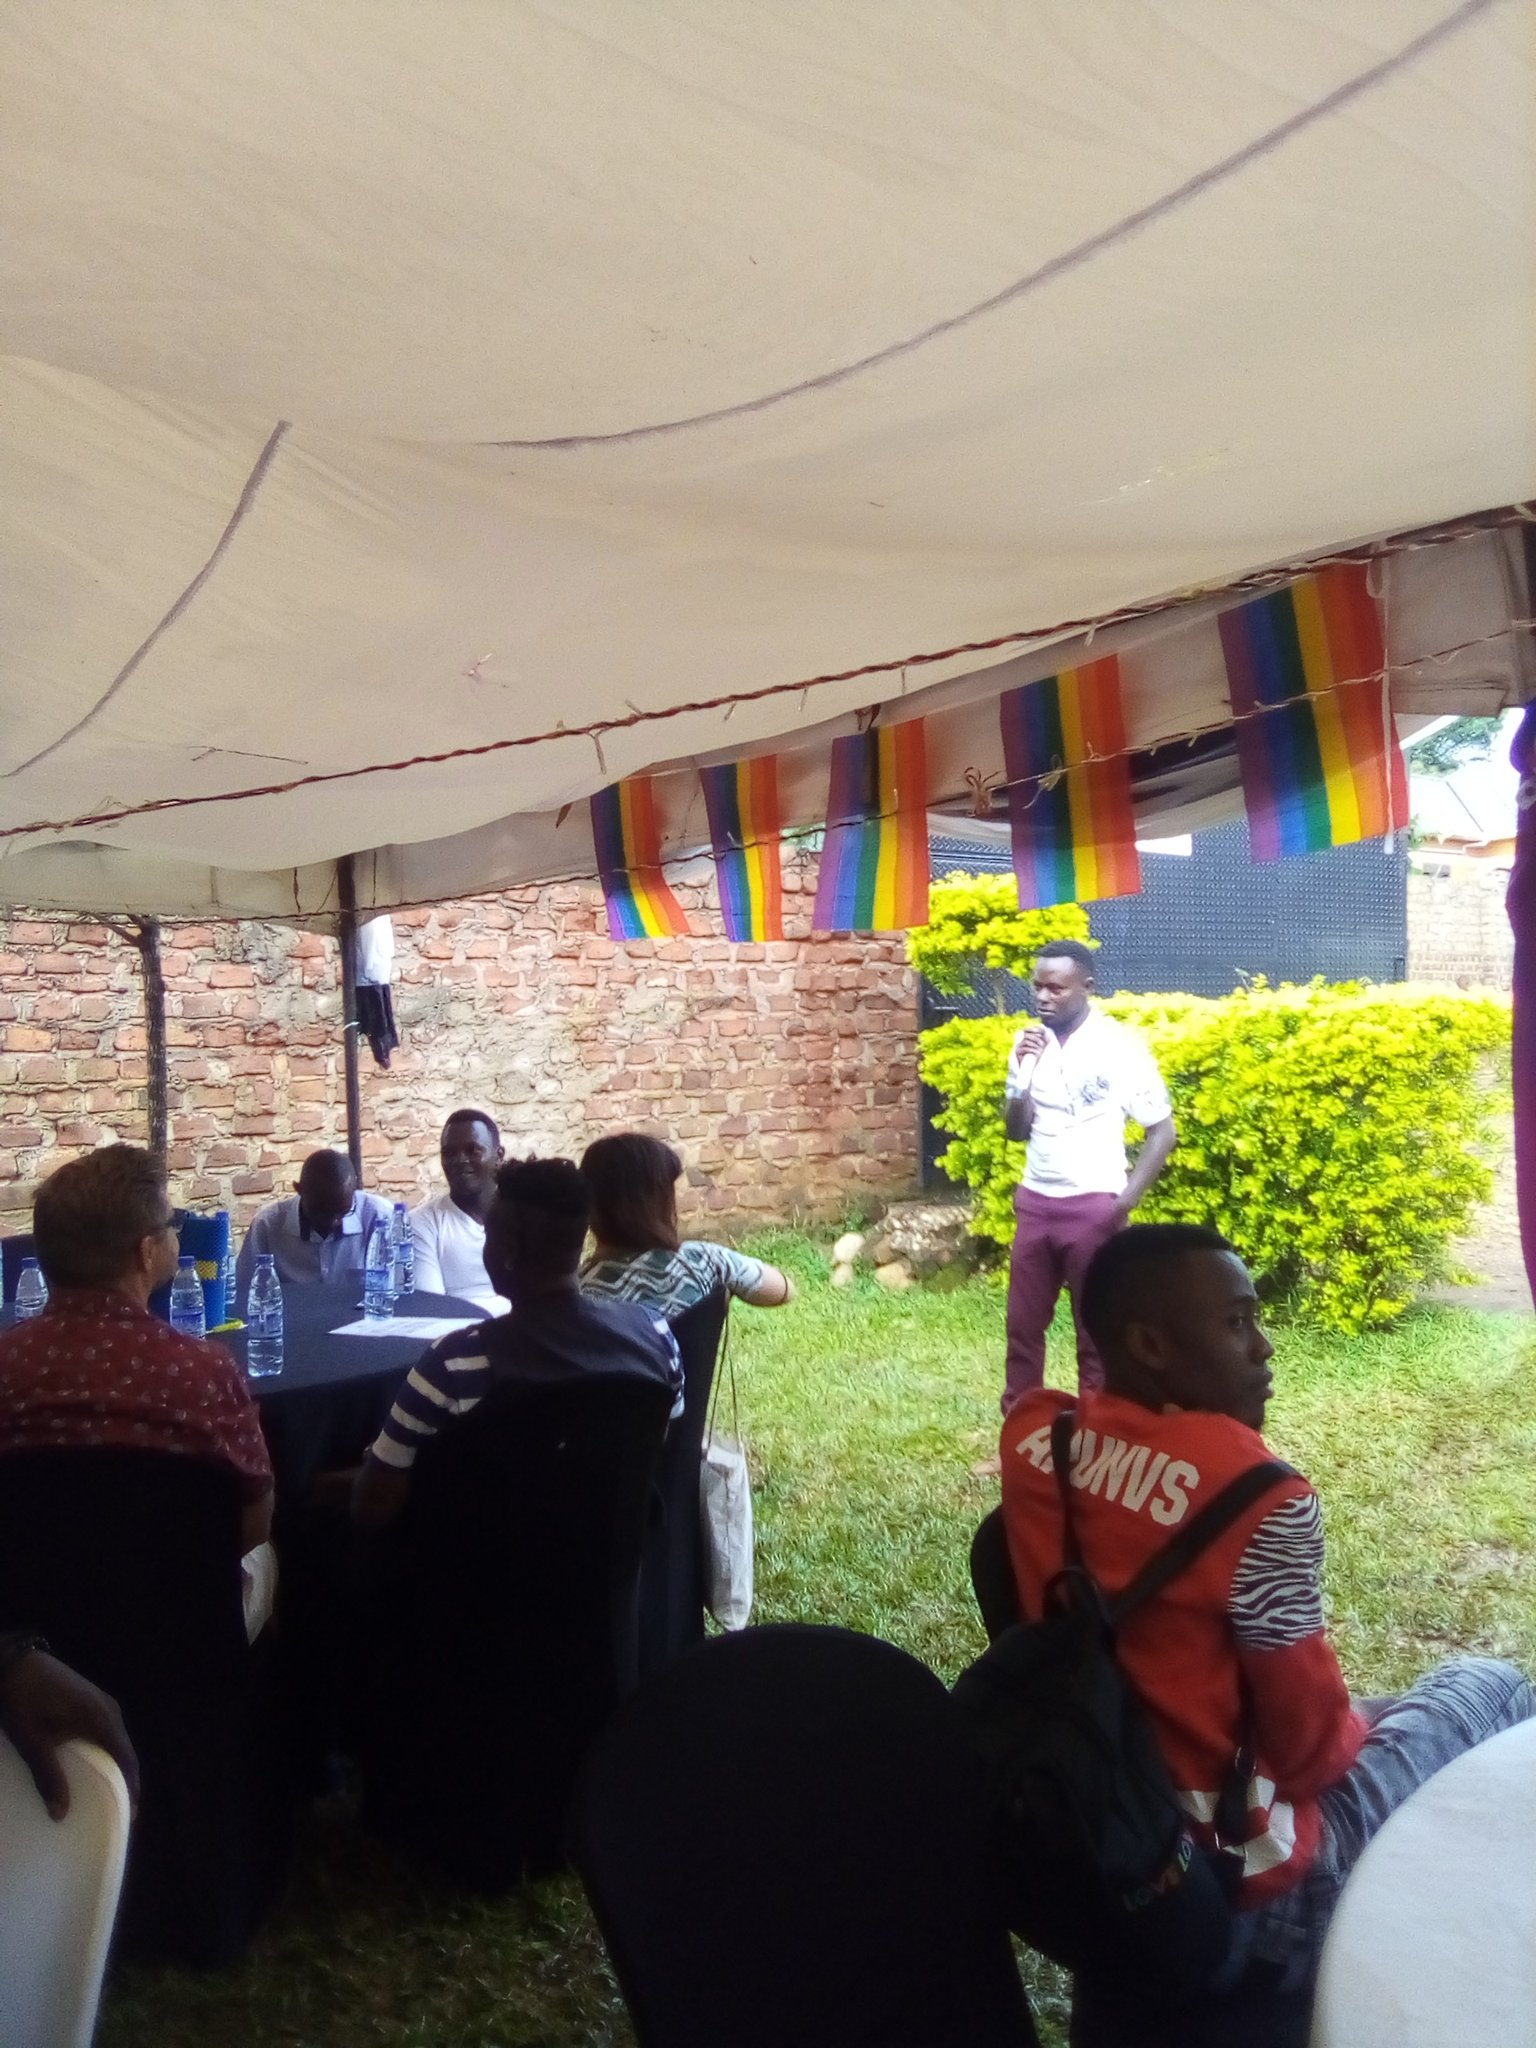 One person is standing and speaking into a microphone outside of a white tent with rainbow flags hanging down. People are seated at tables, listening.